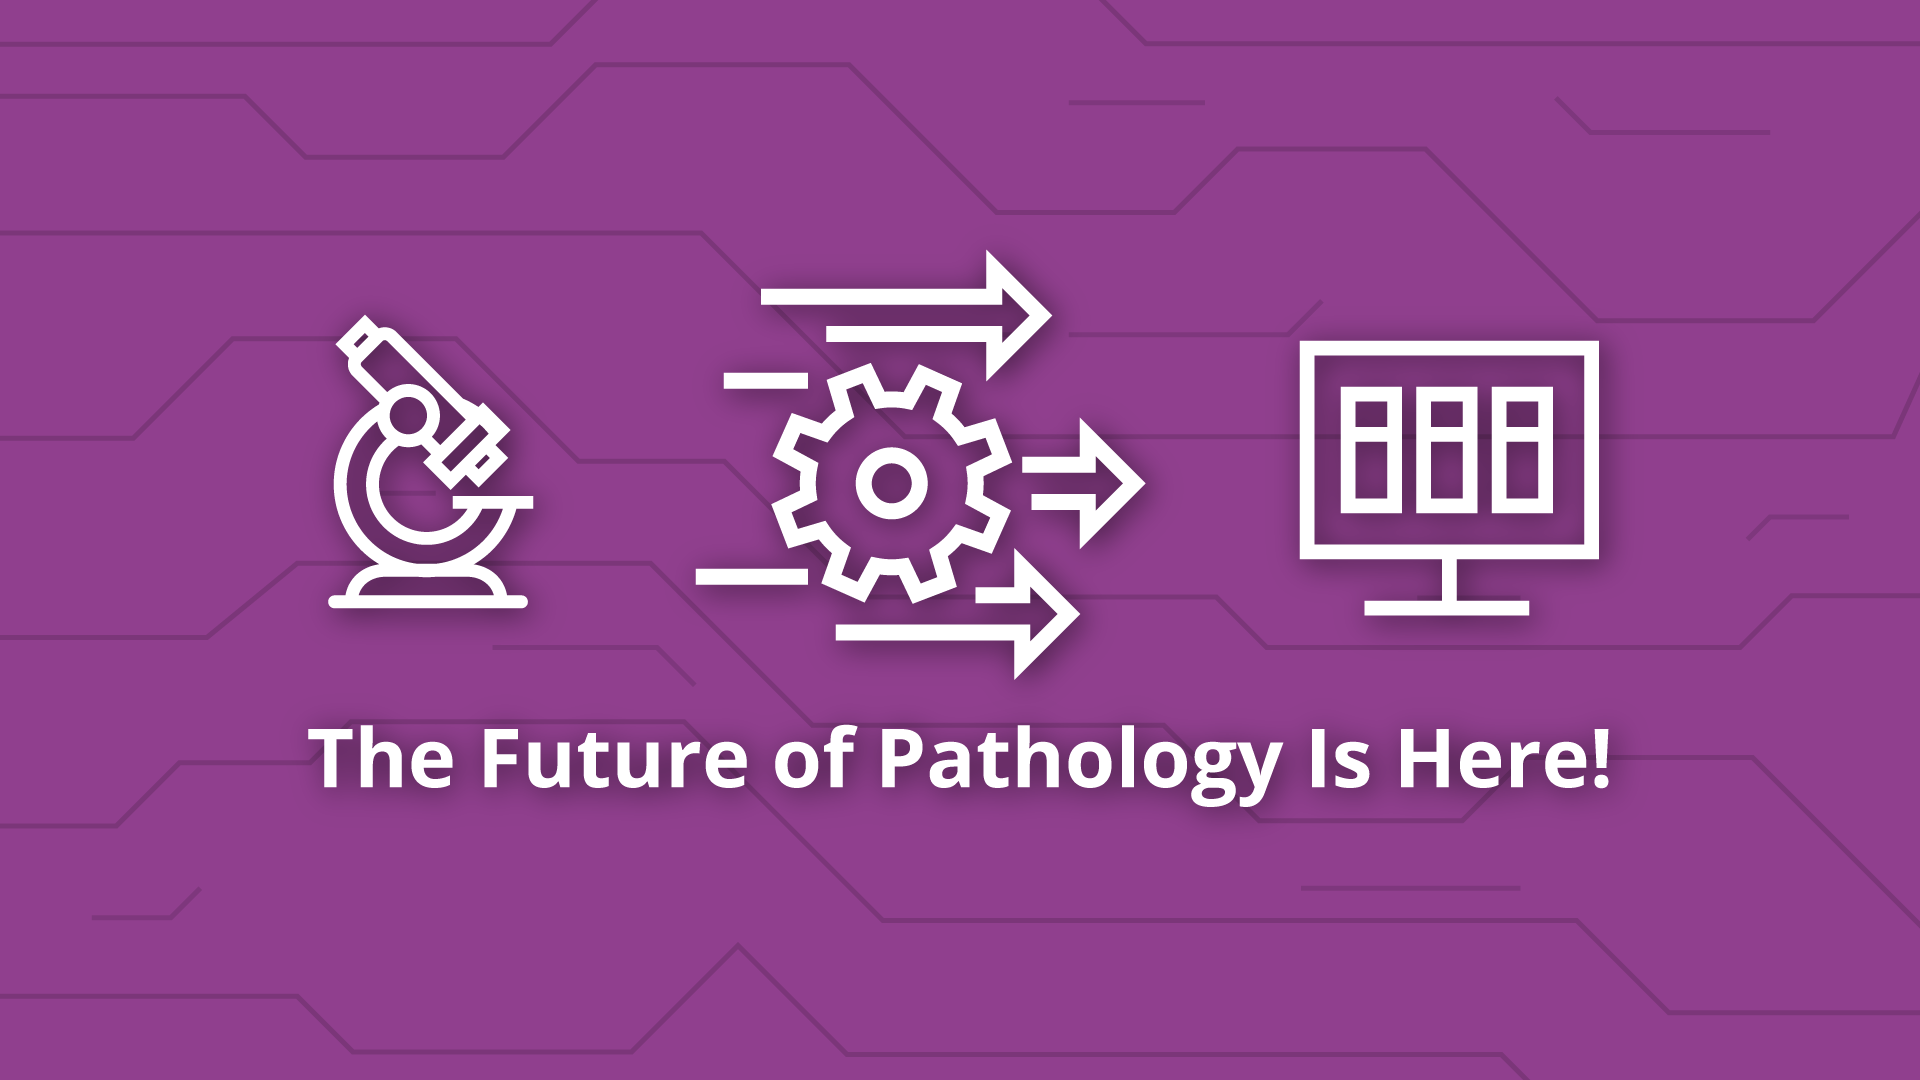 Lessons from COVID-19: Embrace Digital Pathology and AI to Move Fast!